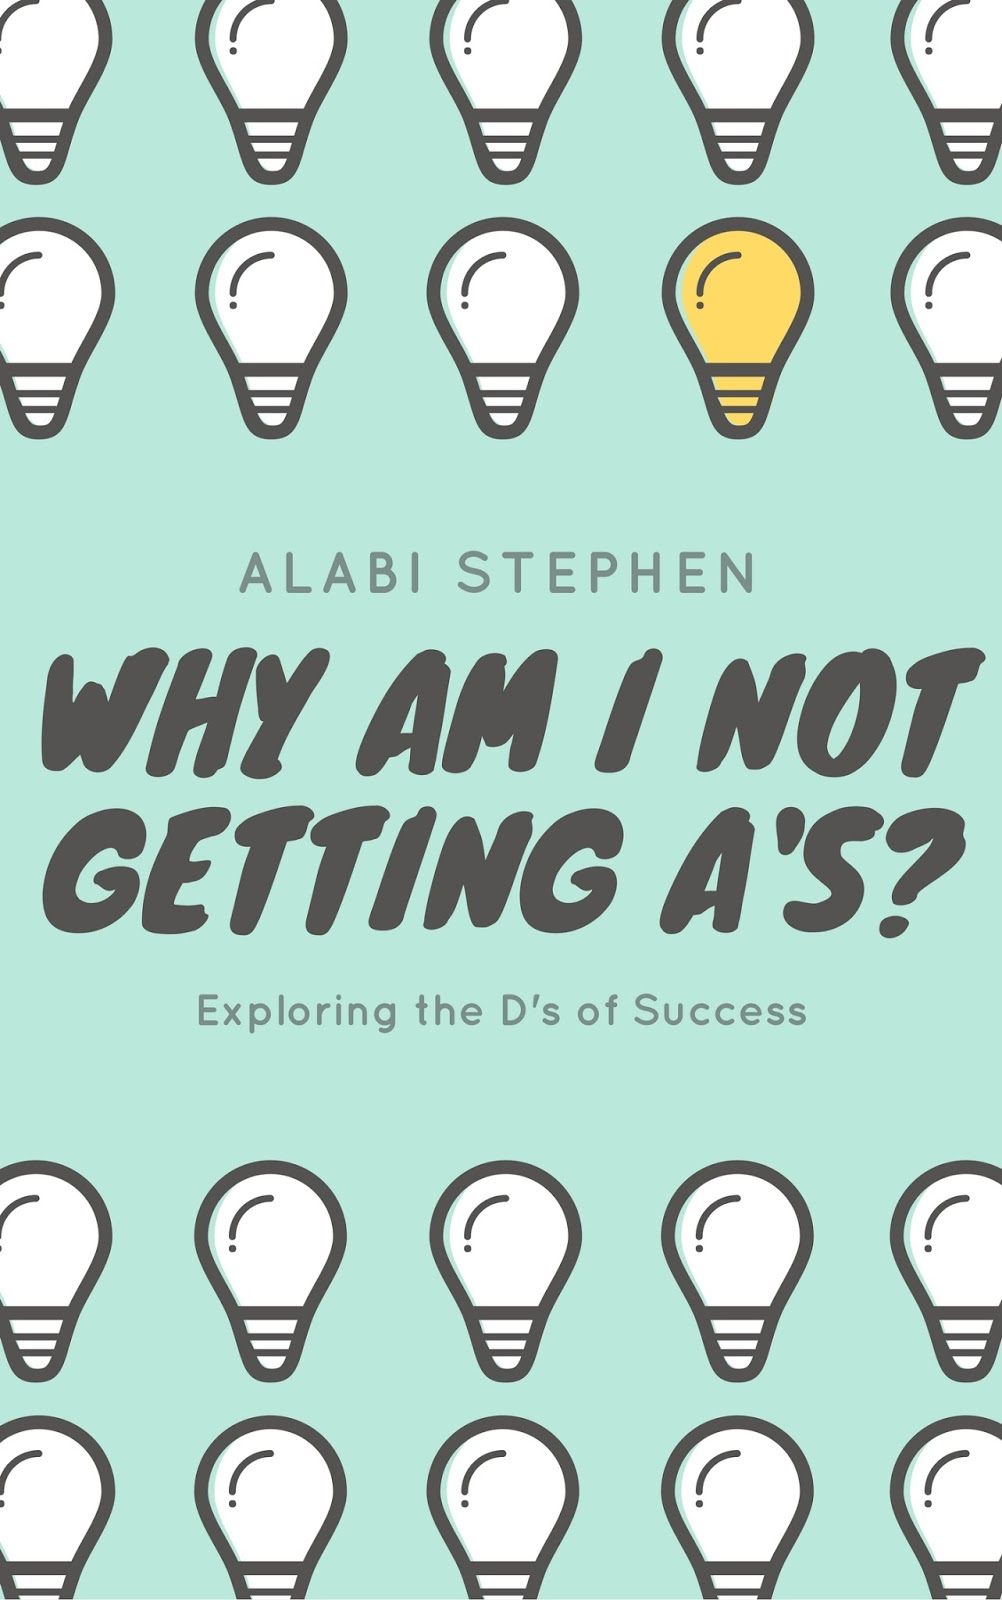 why am i not getting a s exploring the d s of success by alabi